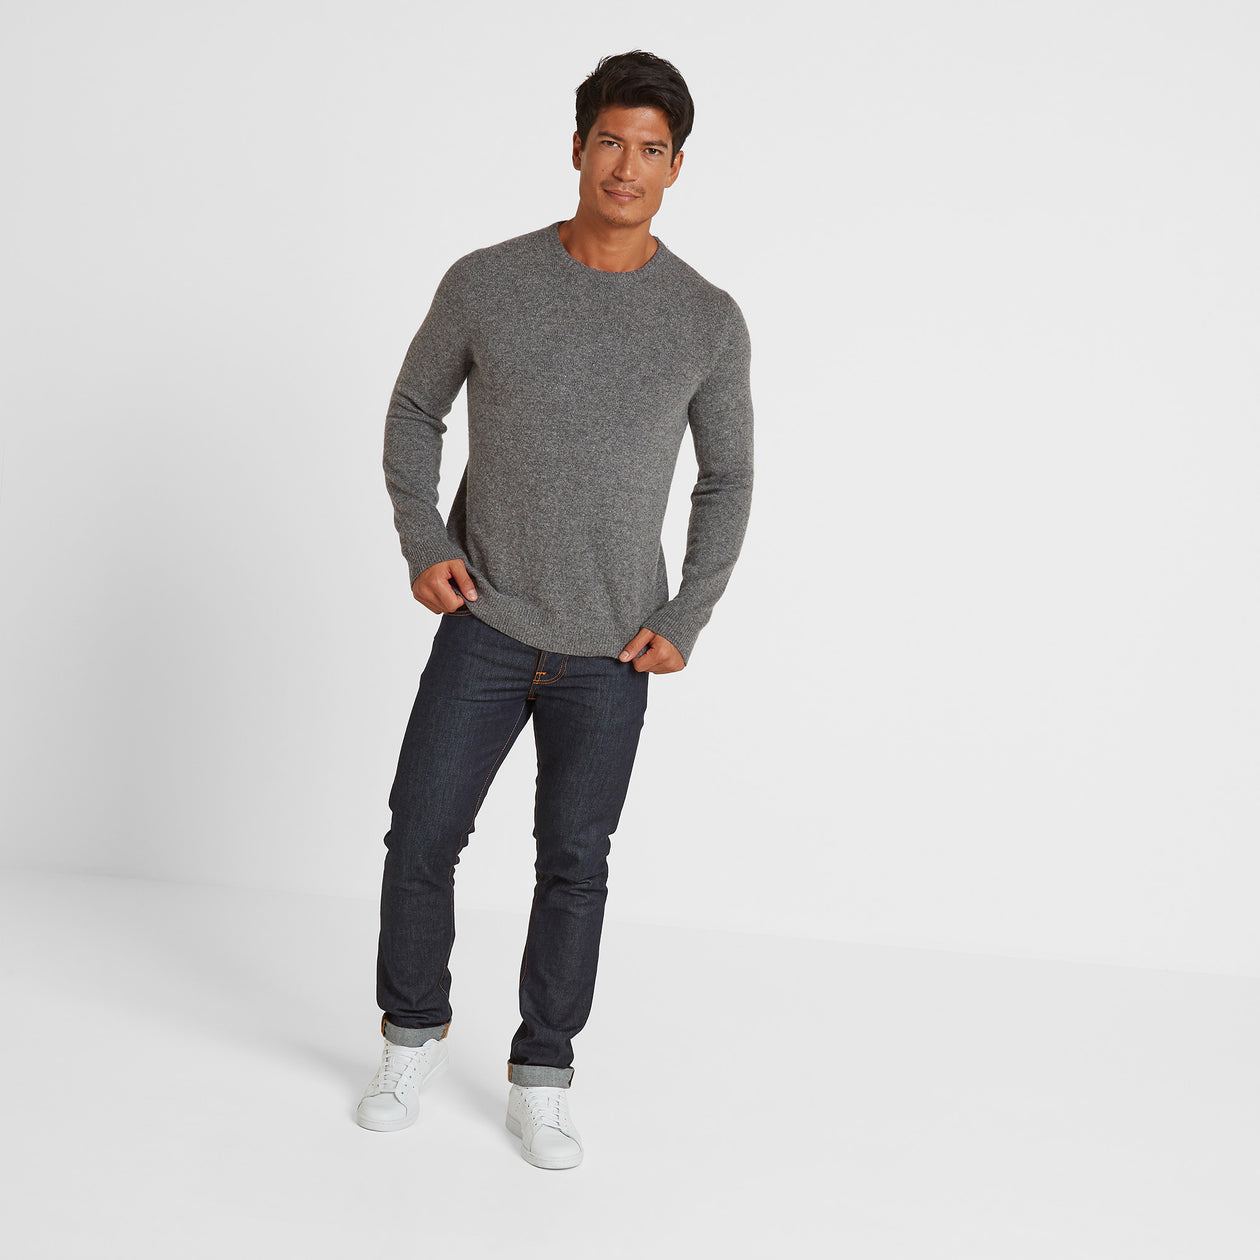 Clyde Mens Soft Wool Crew Neck Jumper - Light Grey Marl image 4